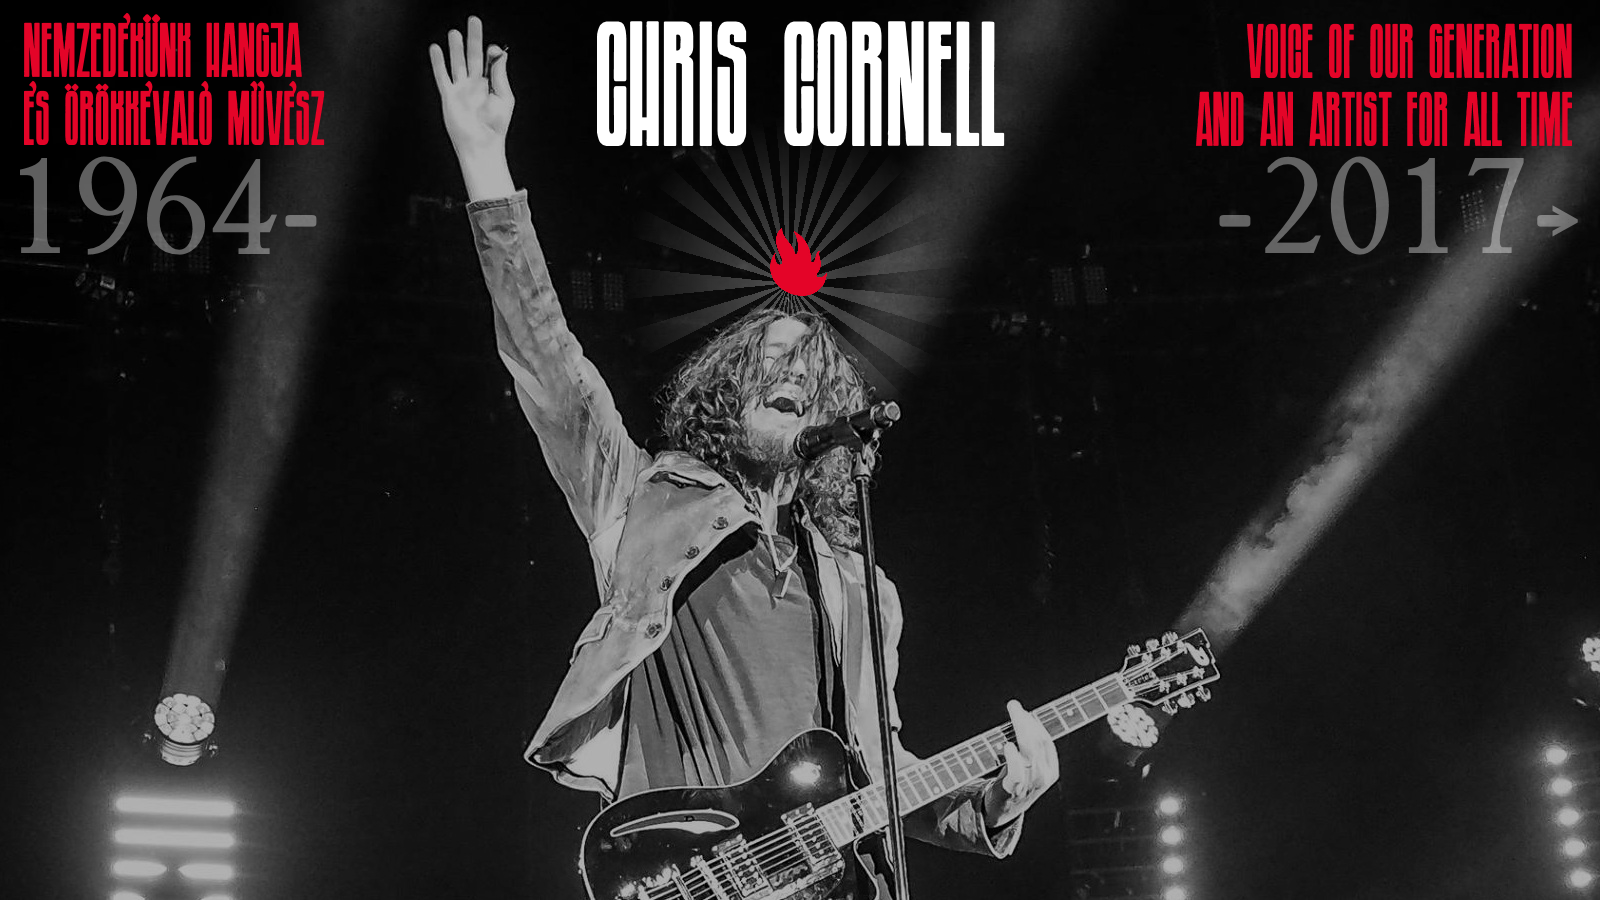 chriscornell_goodbye_png_1.png